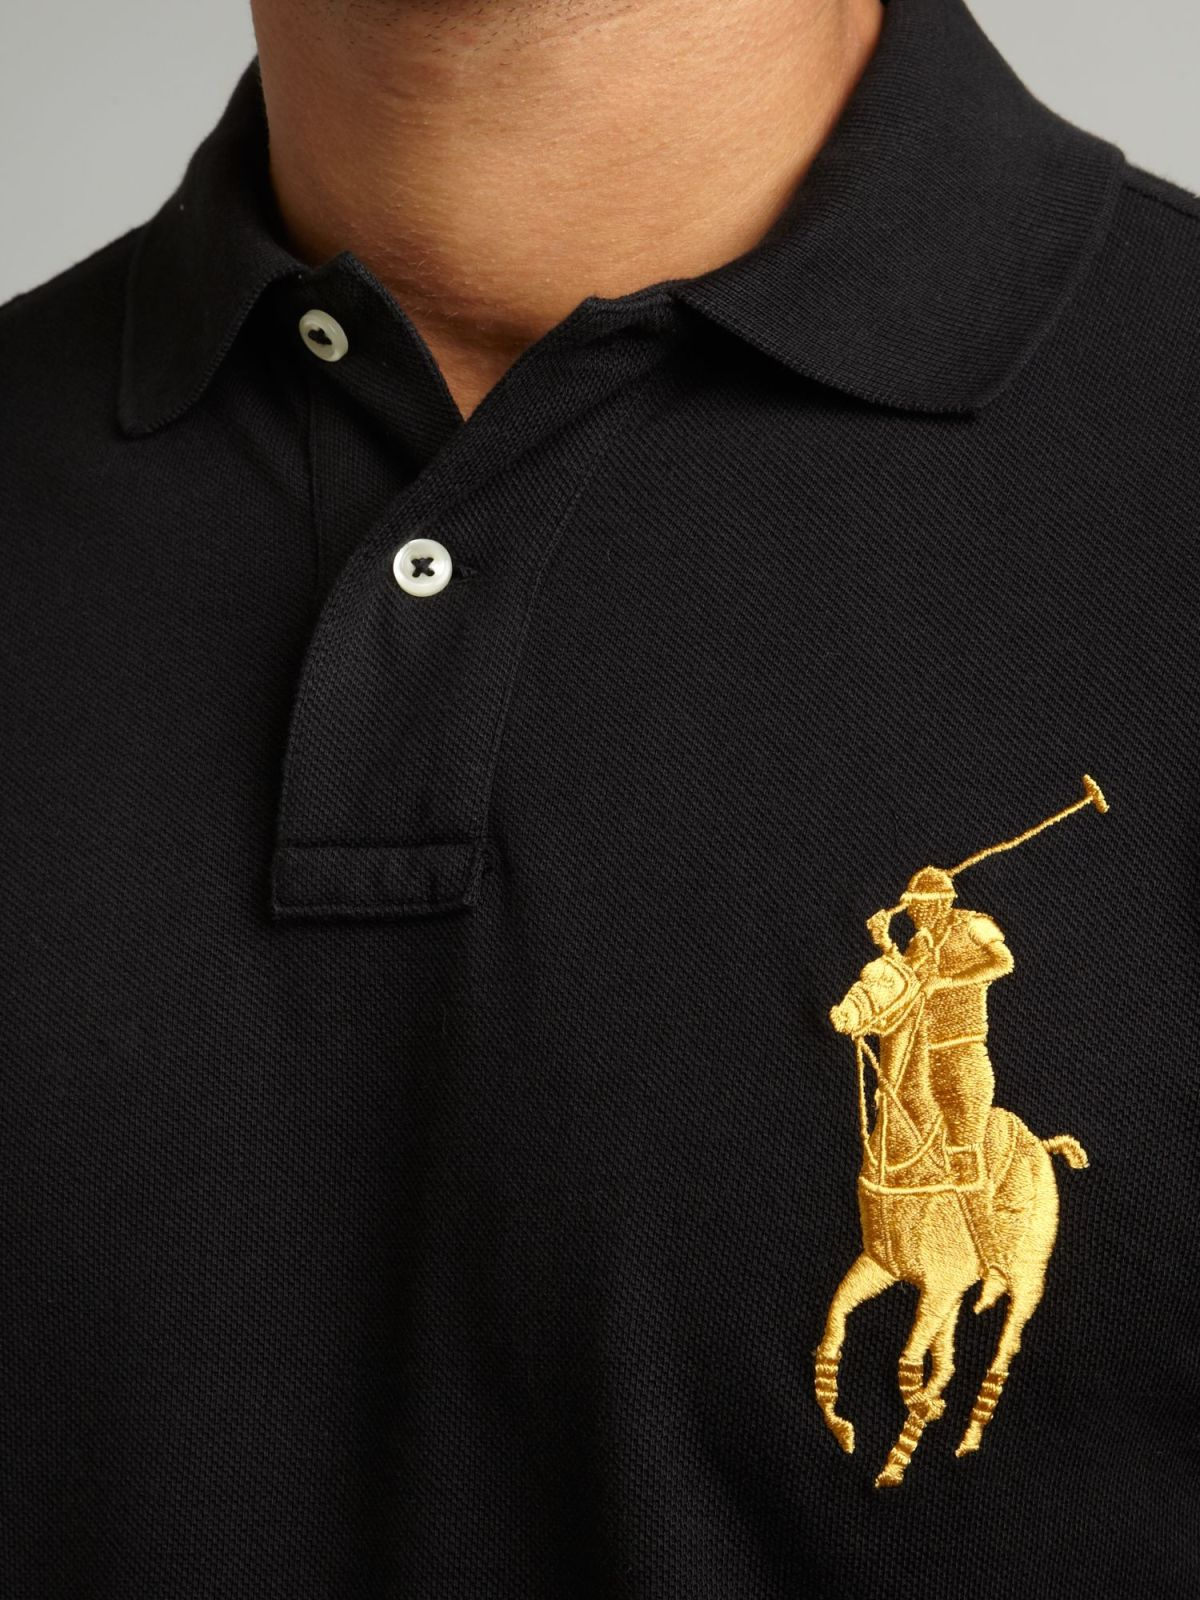 polo-ralph-lauren-black-custom-fitted-gold-big-pony-polo-shirt-product-3-4683452-280950498